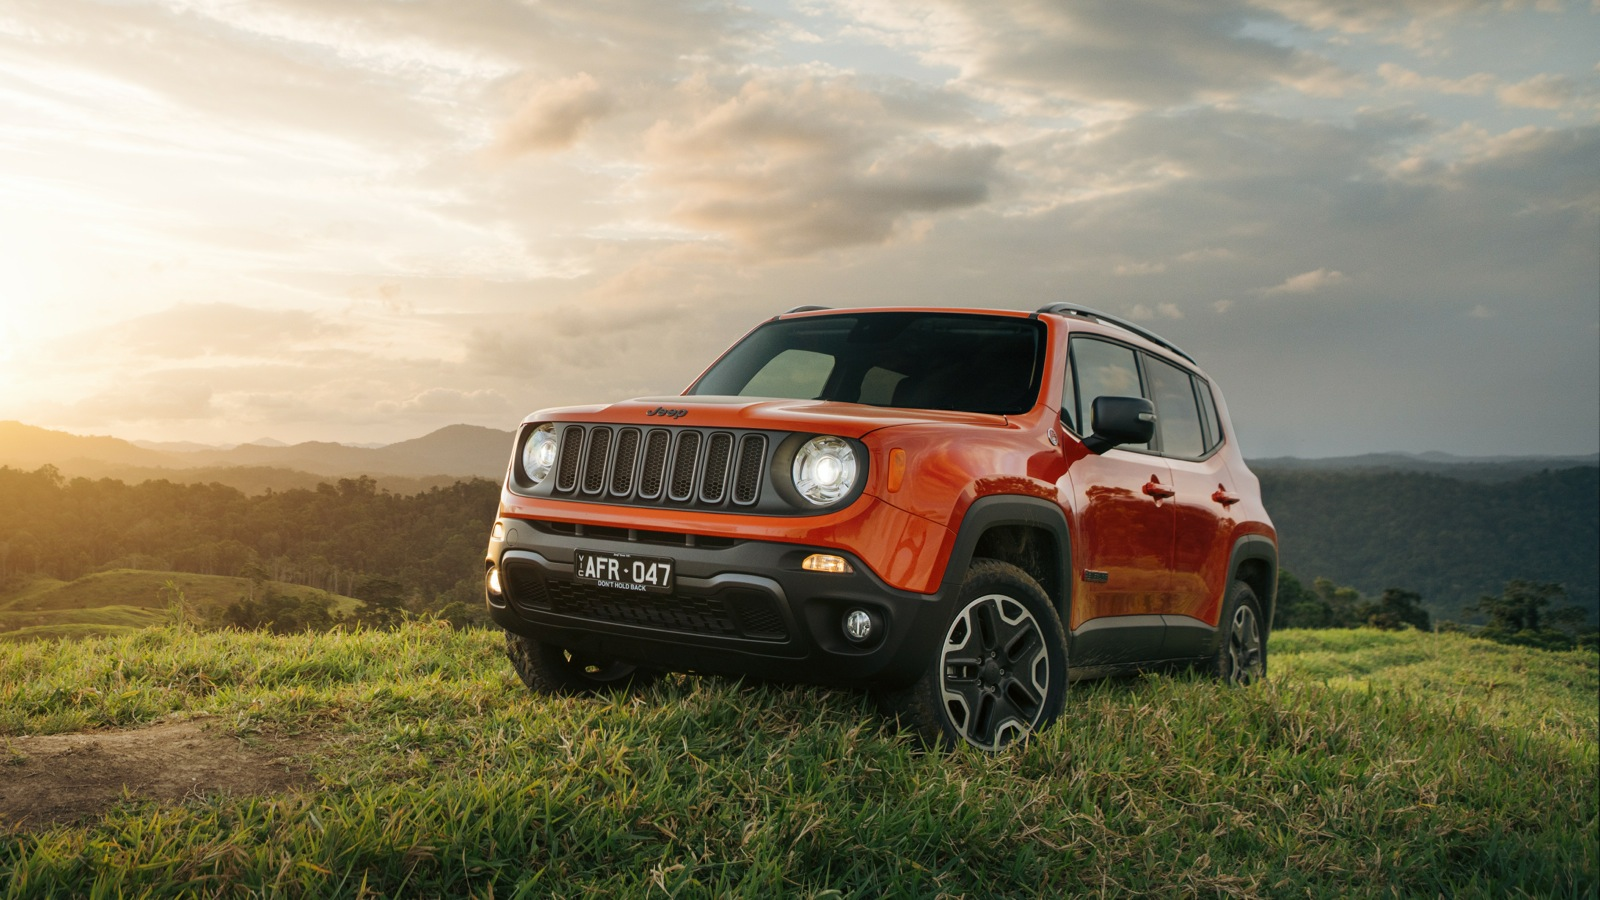 2016 jeep renegade pricing slashed by up to 2500 cashback offer for existing owners photos. Black Bedroom Furniture Sets. Home Design Ideas